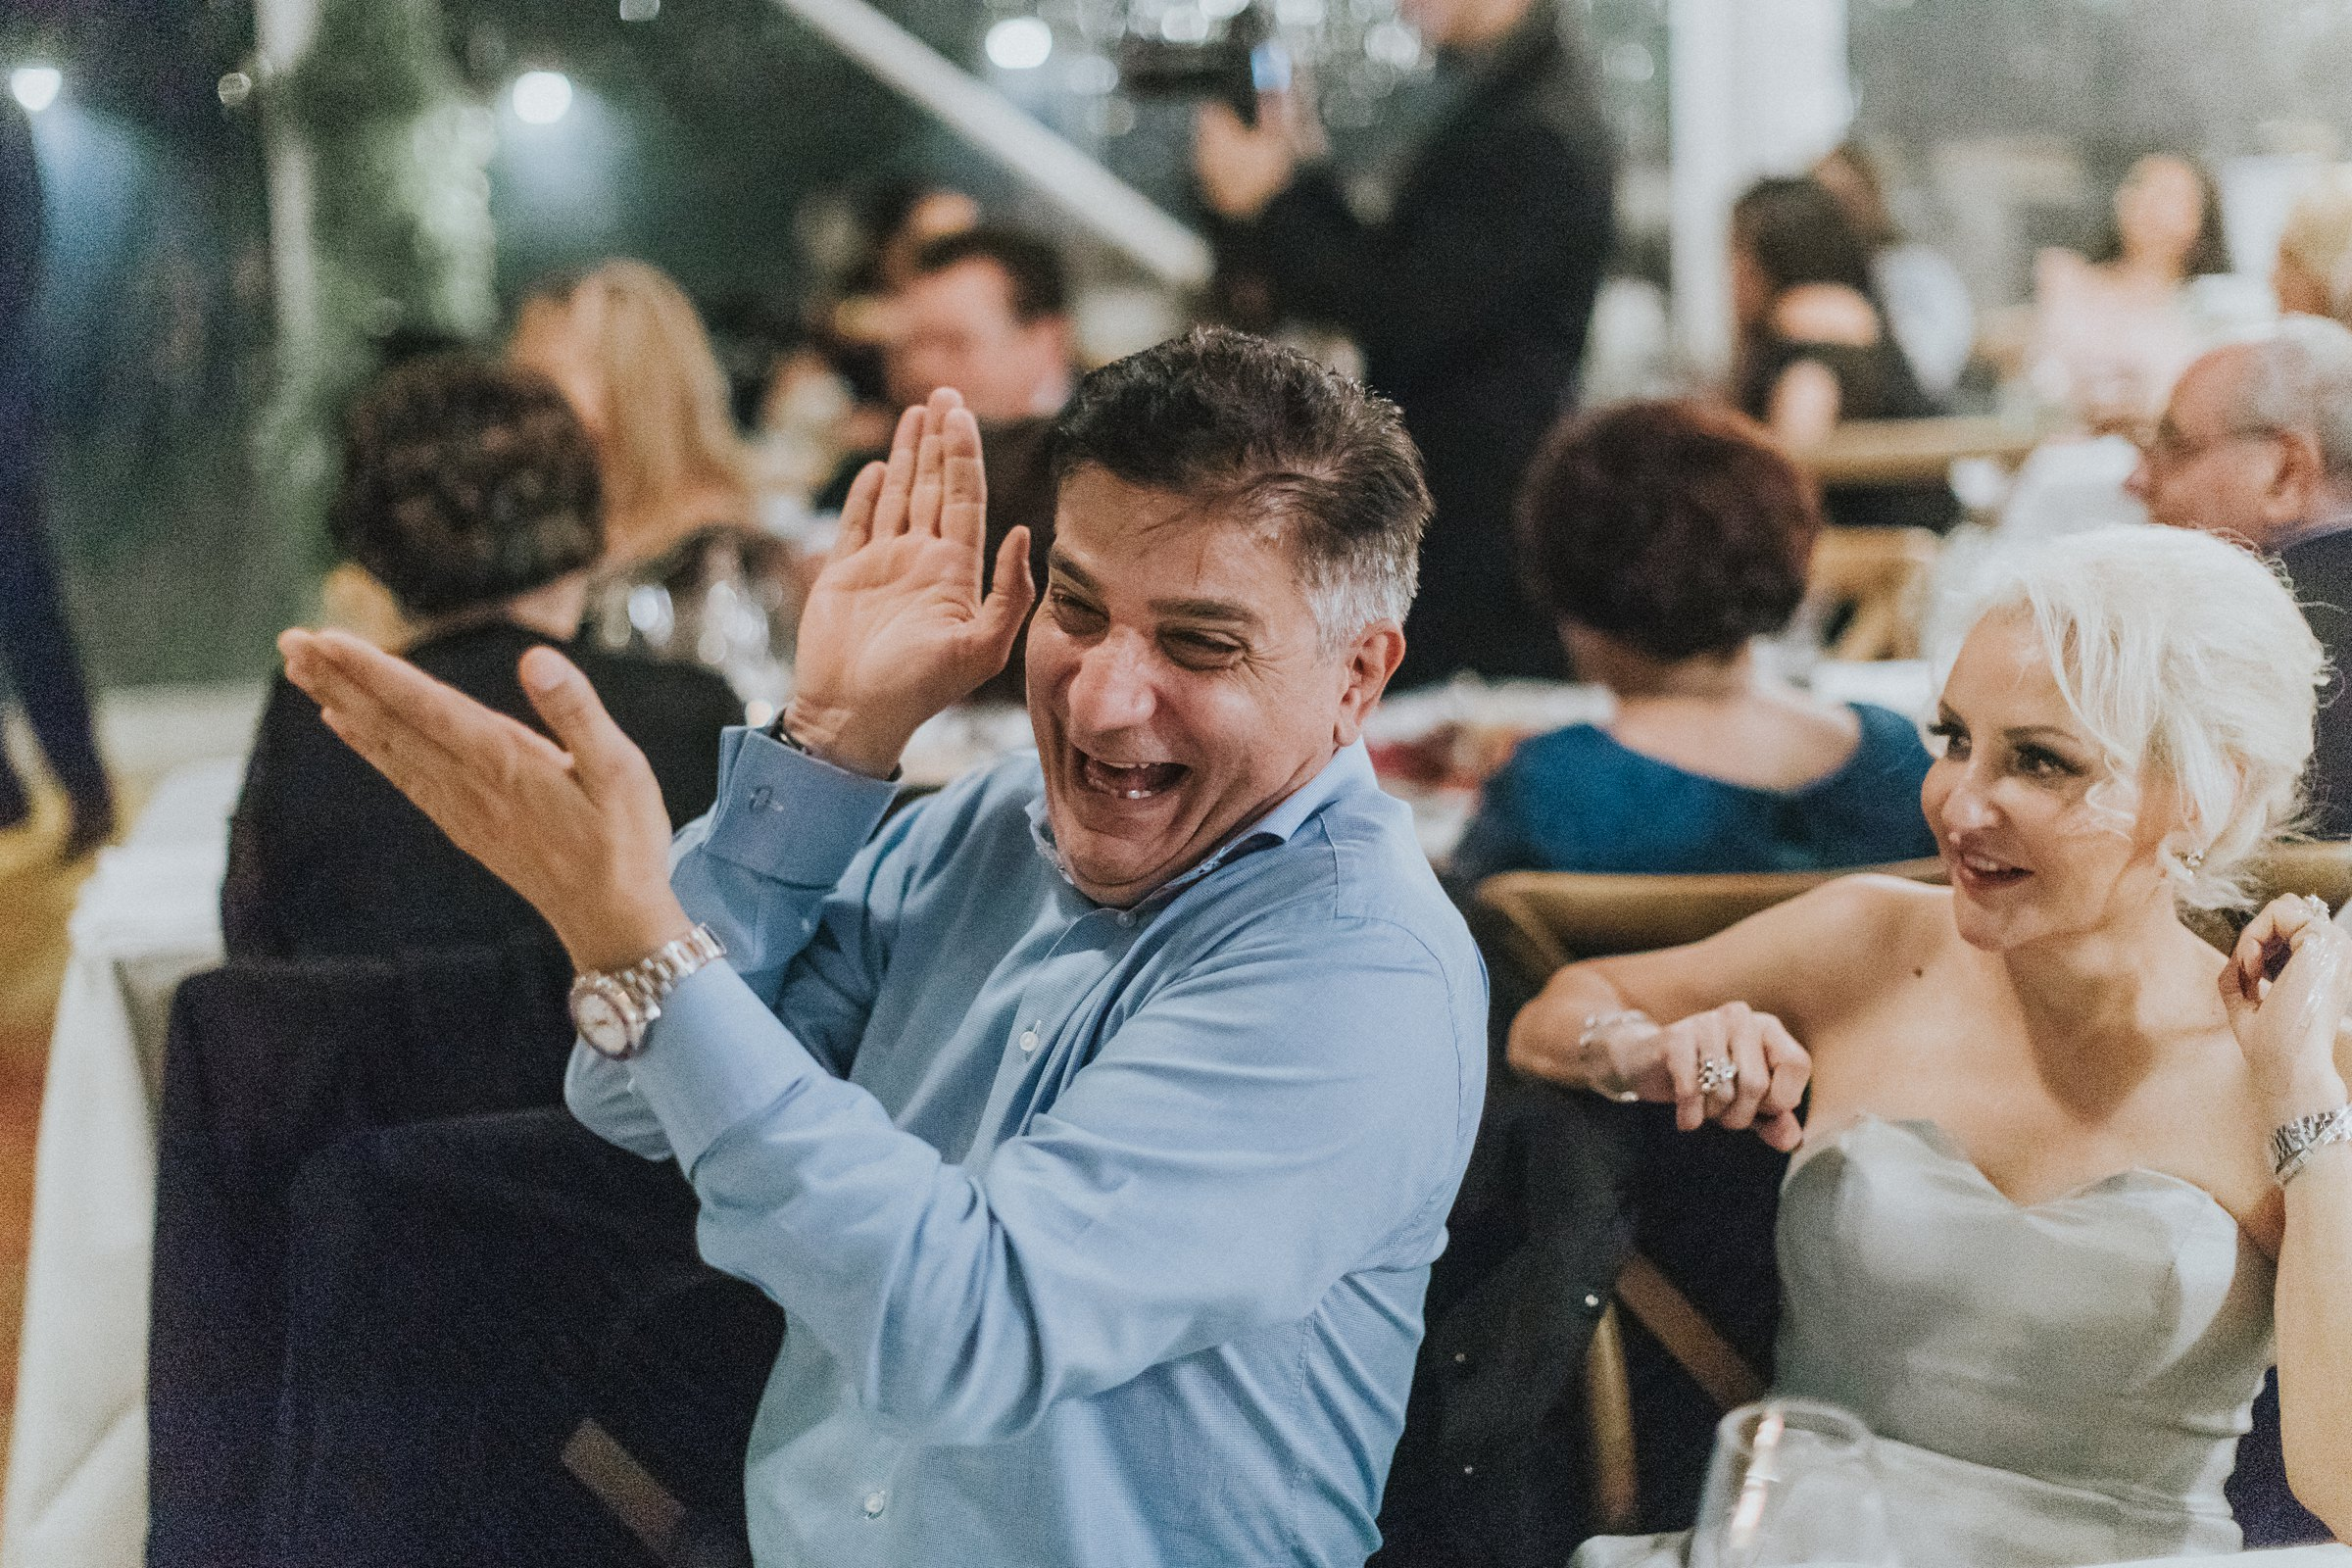 candid photography of centennial park wedding reception